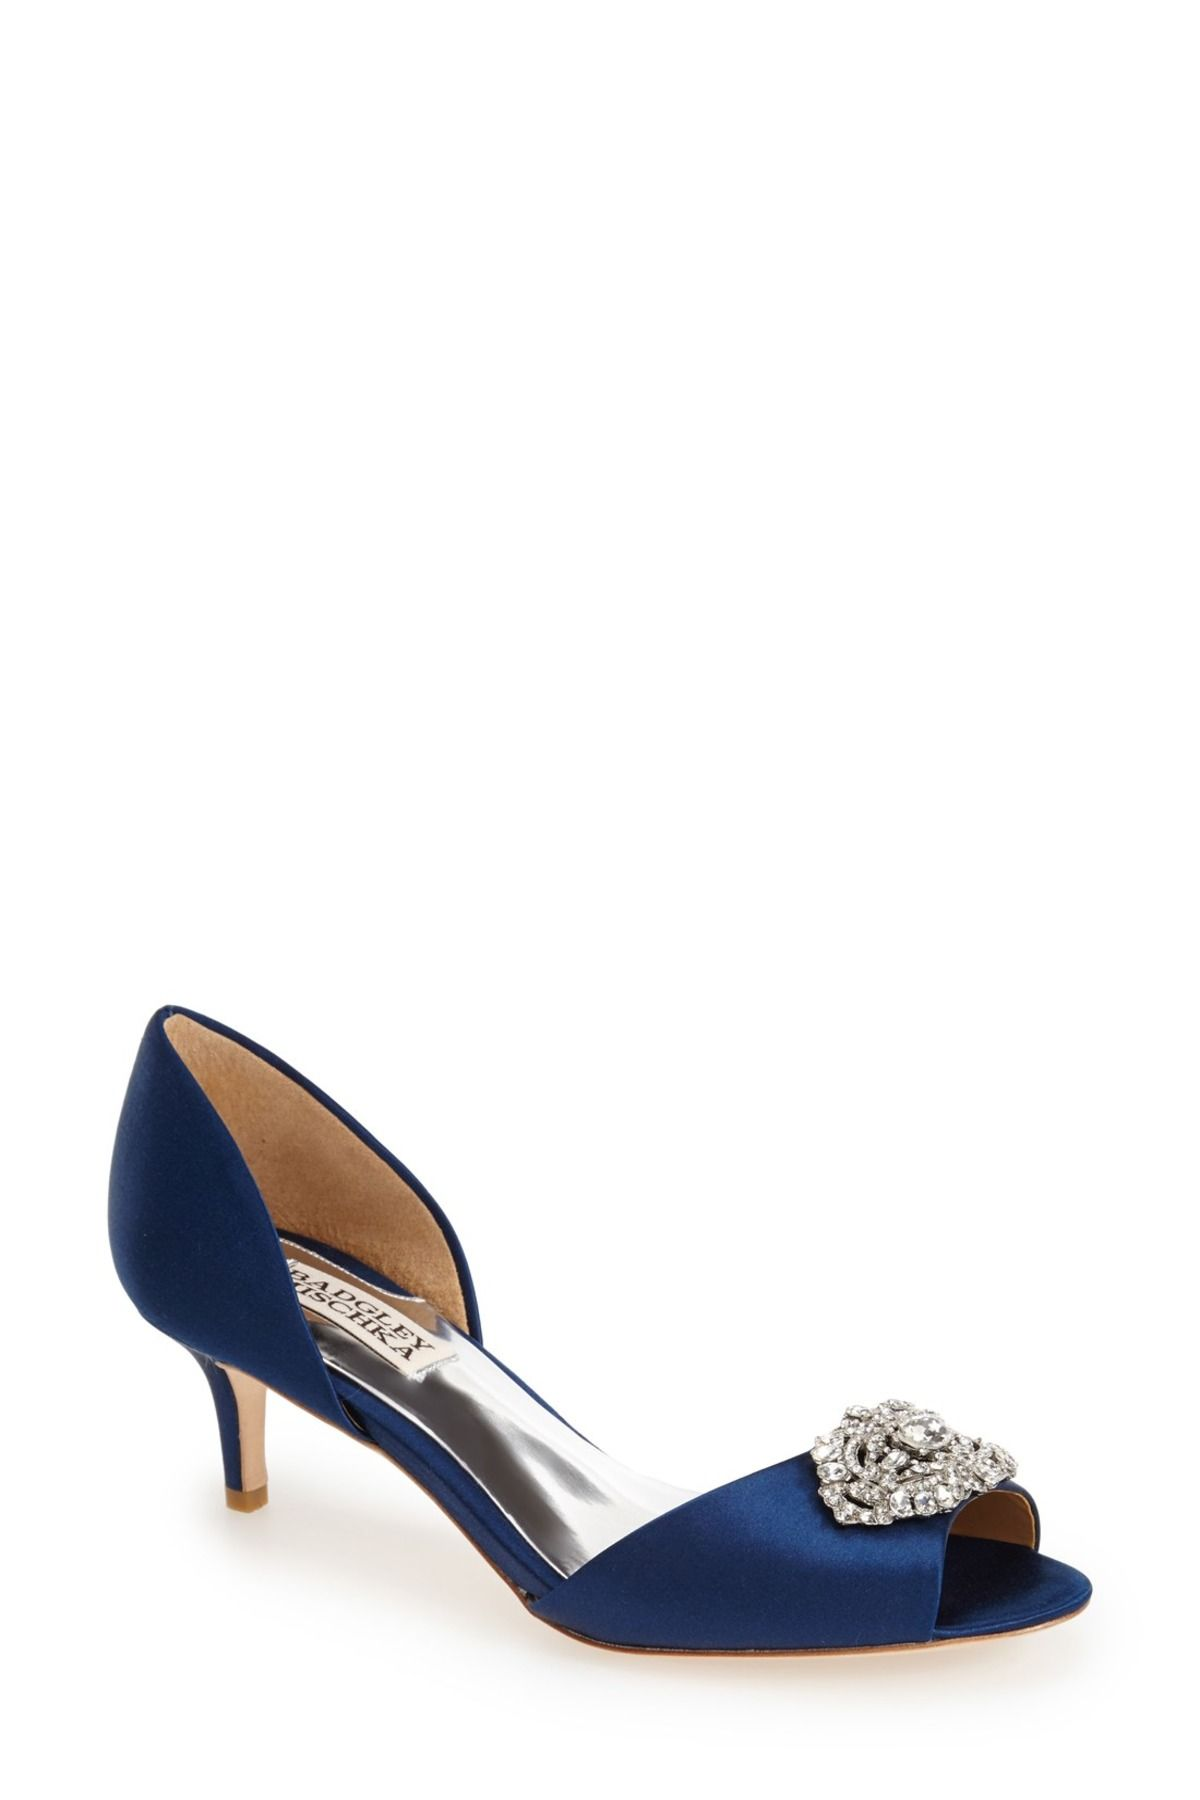 Petrina peep toe duorsay pump wide width available products